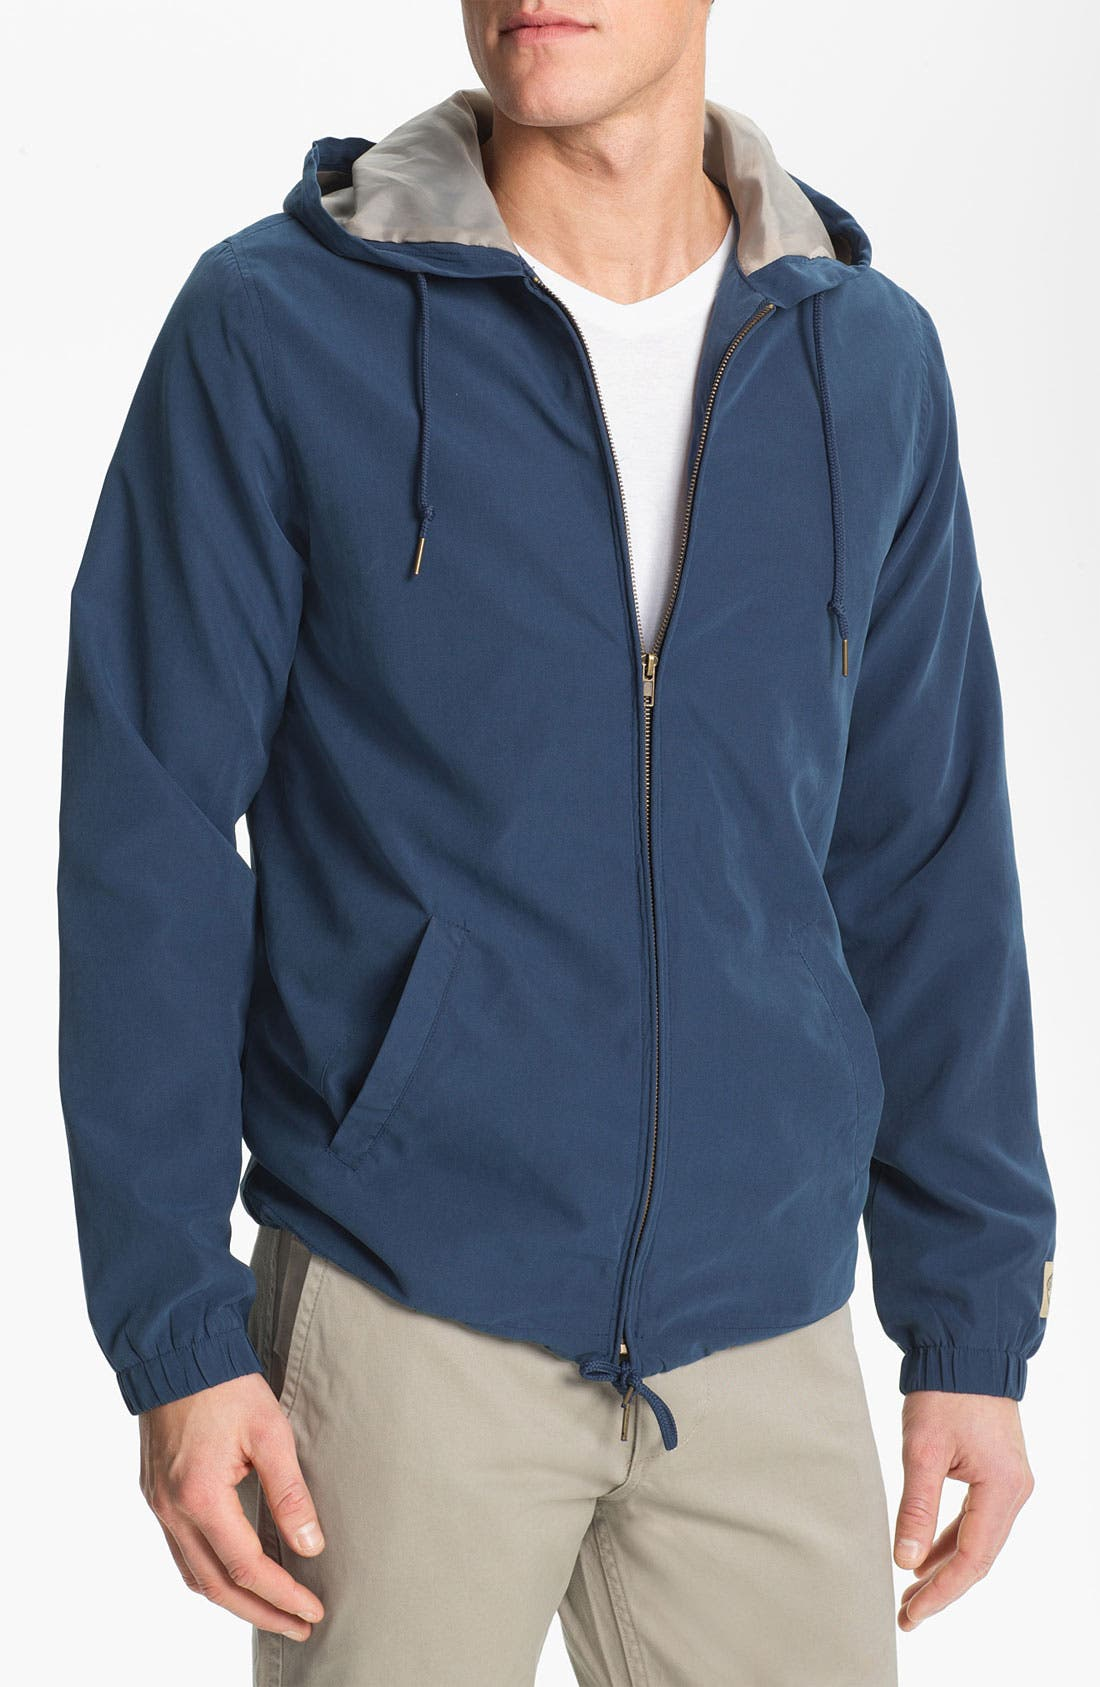 Alternate Image 1 Selected - Obey 'Recluse' Zip Jacket